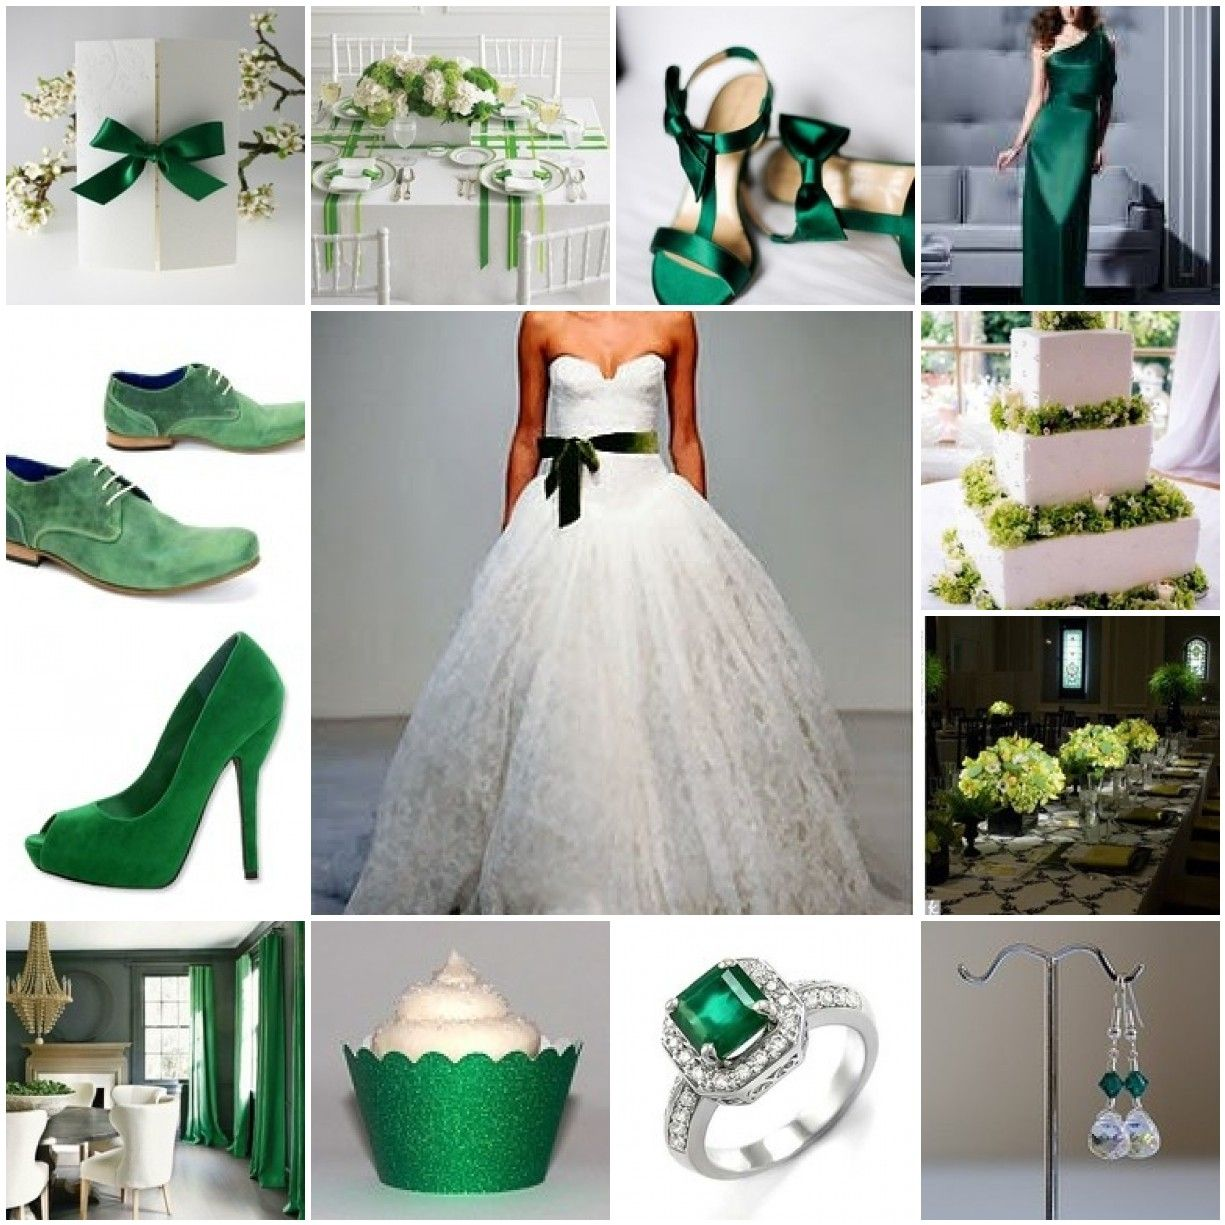 Emerald Green Bridesmaid Dress Shoes Ring White Wedding Accessories And Cake